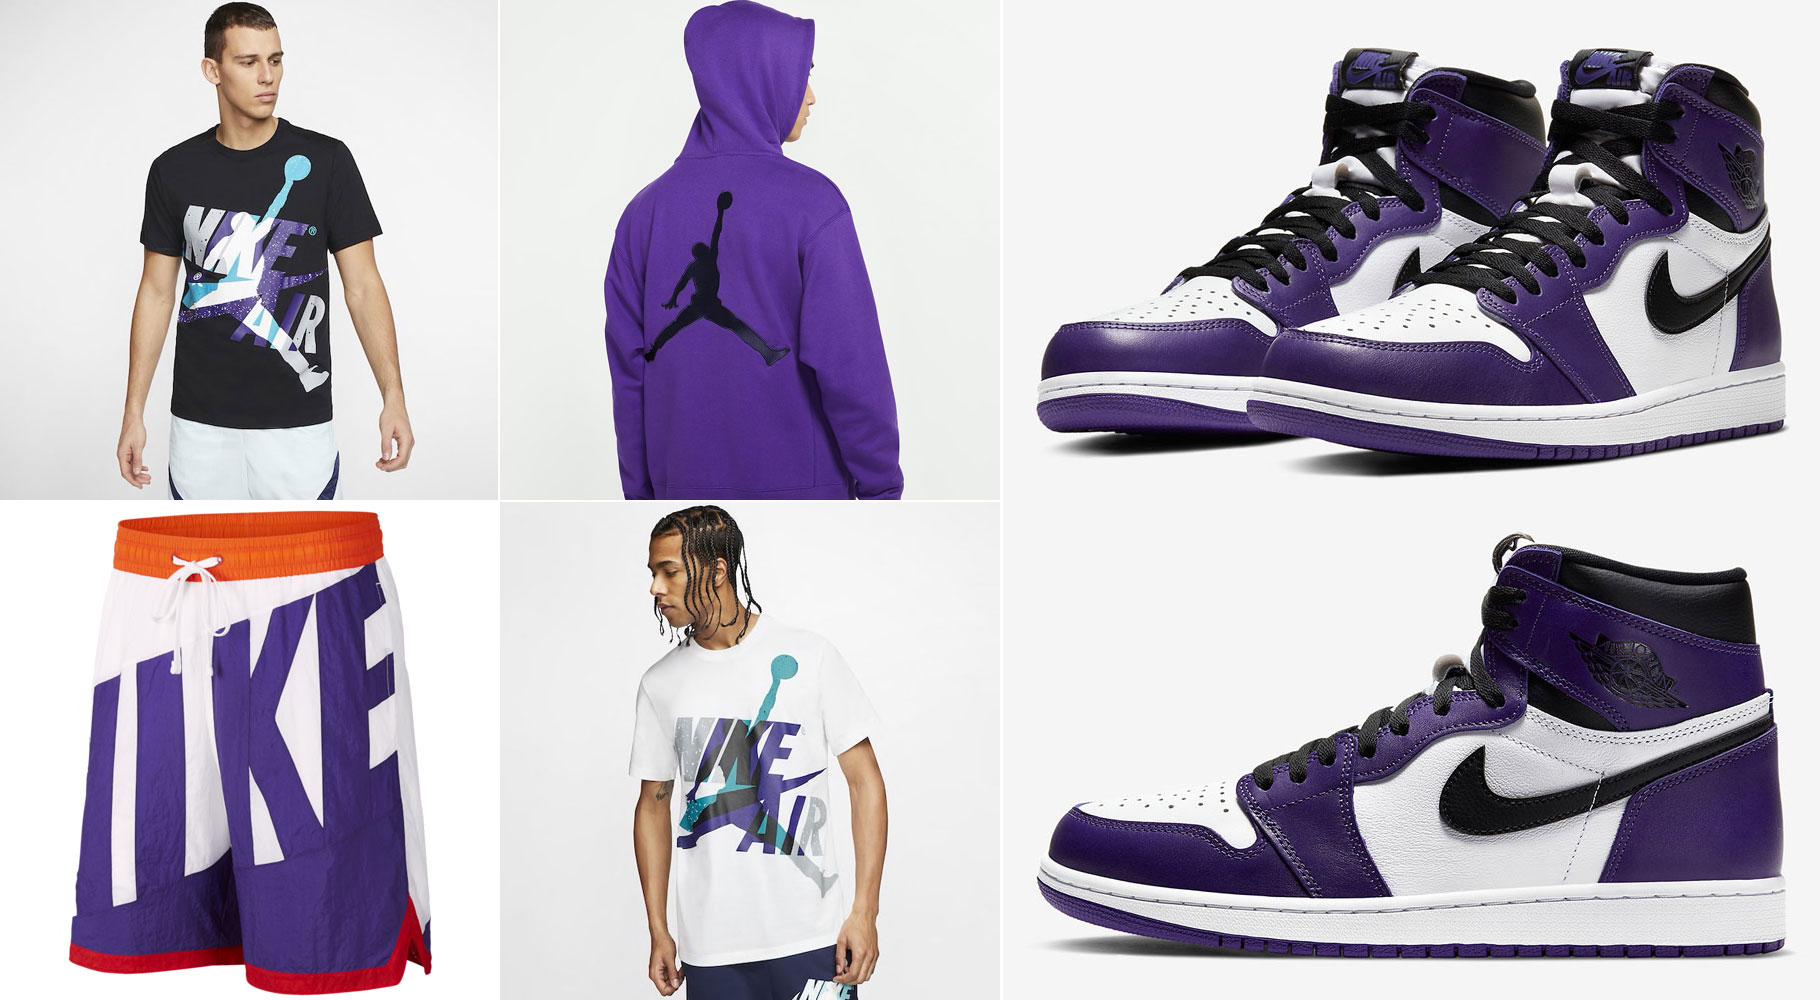 air-jordan-1-high-court-purple-clothing-outfits